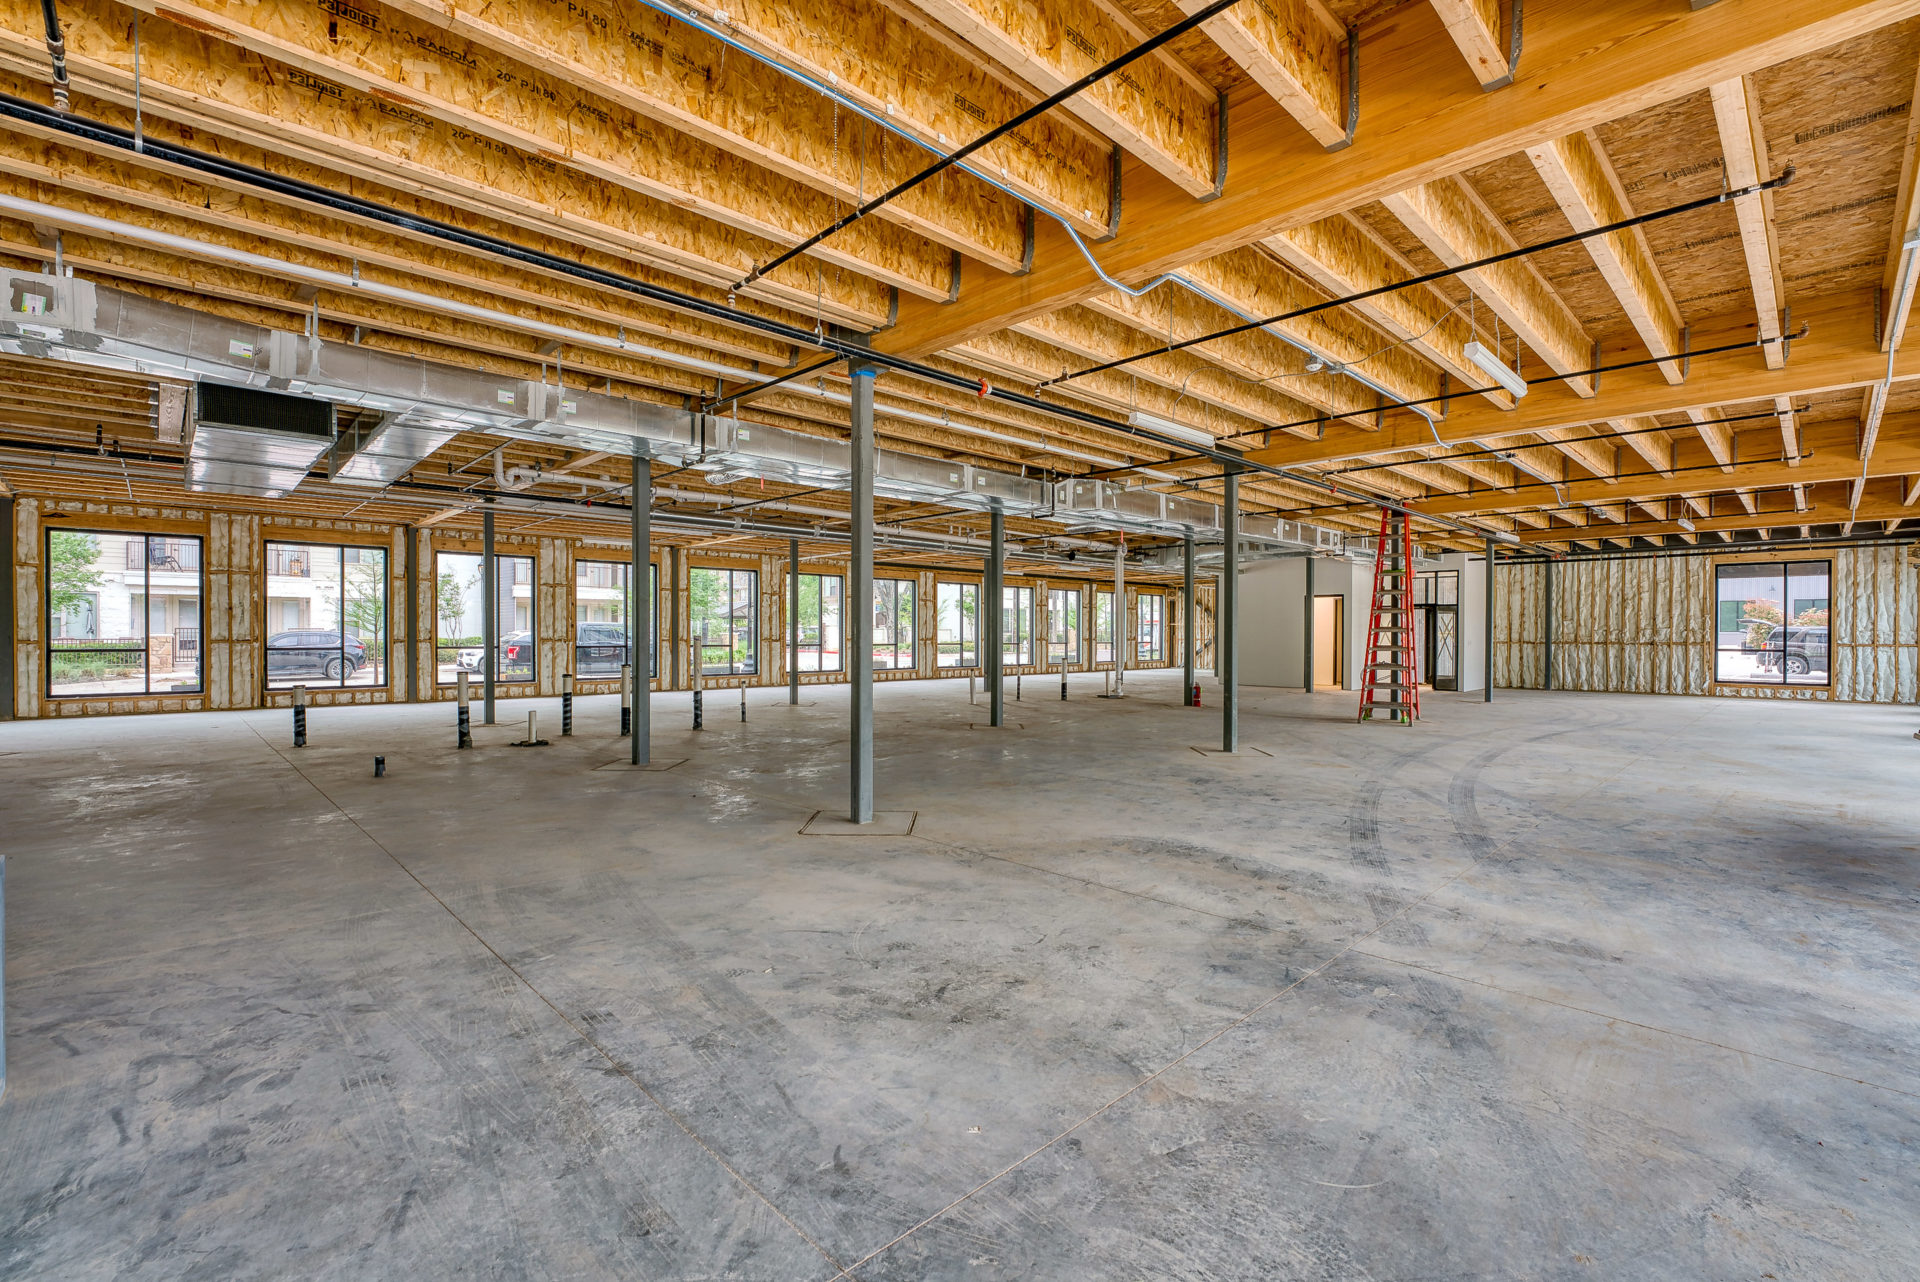 Interior view of 133 Nursery Lane with unfinished ceilings, cement flooring, and grey steel beams throughout the space